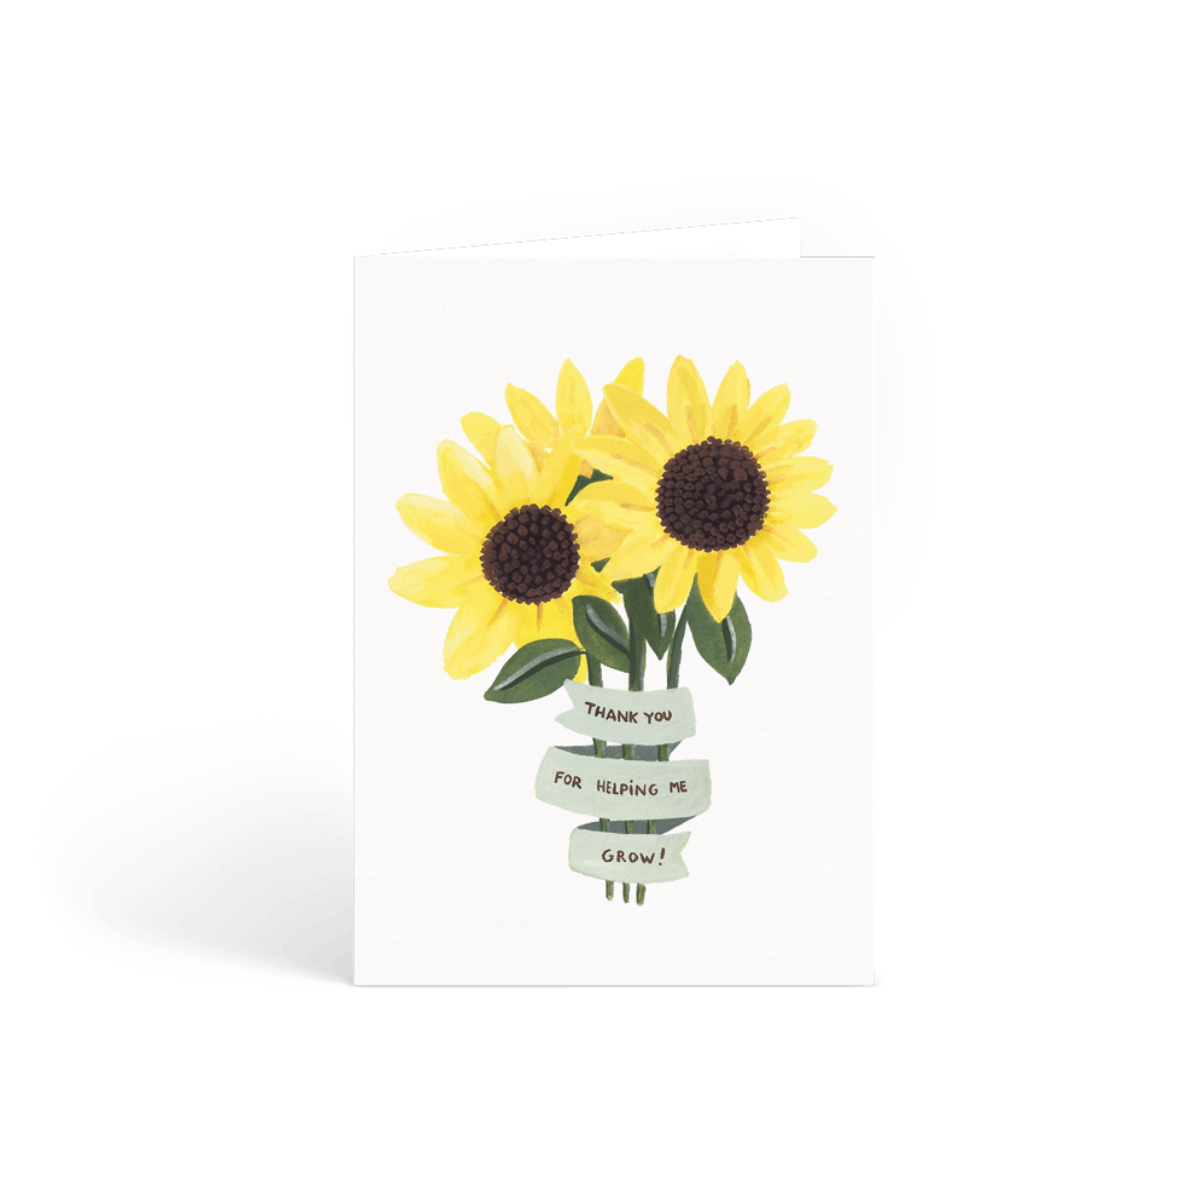 Https%3a%2f%2fwww.papier.com%2fproduct image%2f7822%2f2%2fthank you sunflower 1929 front 1464880822.png?ixlib=rb 1.1